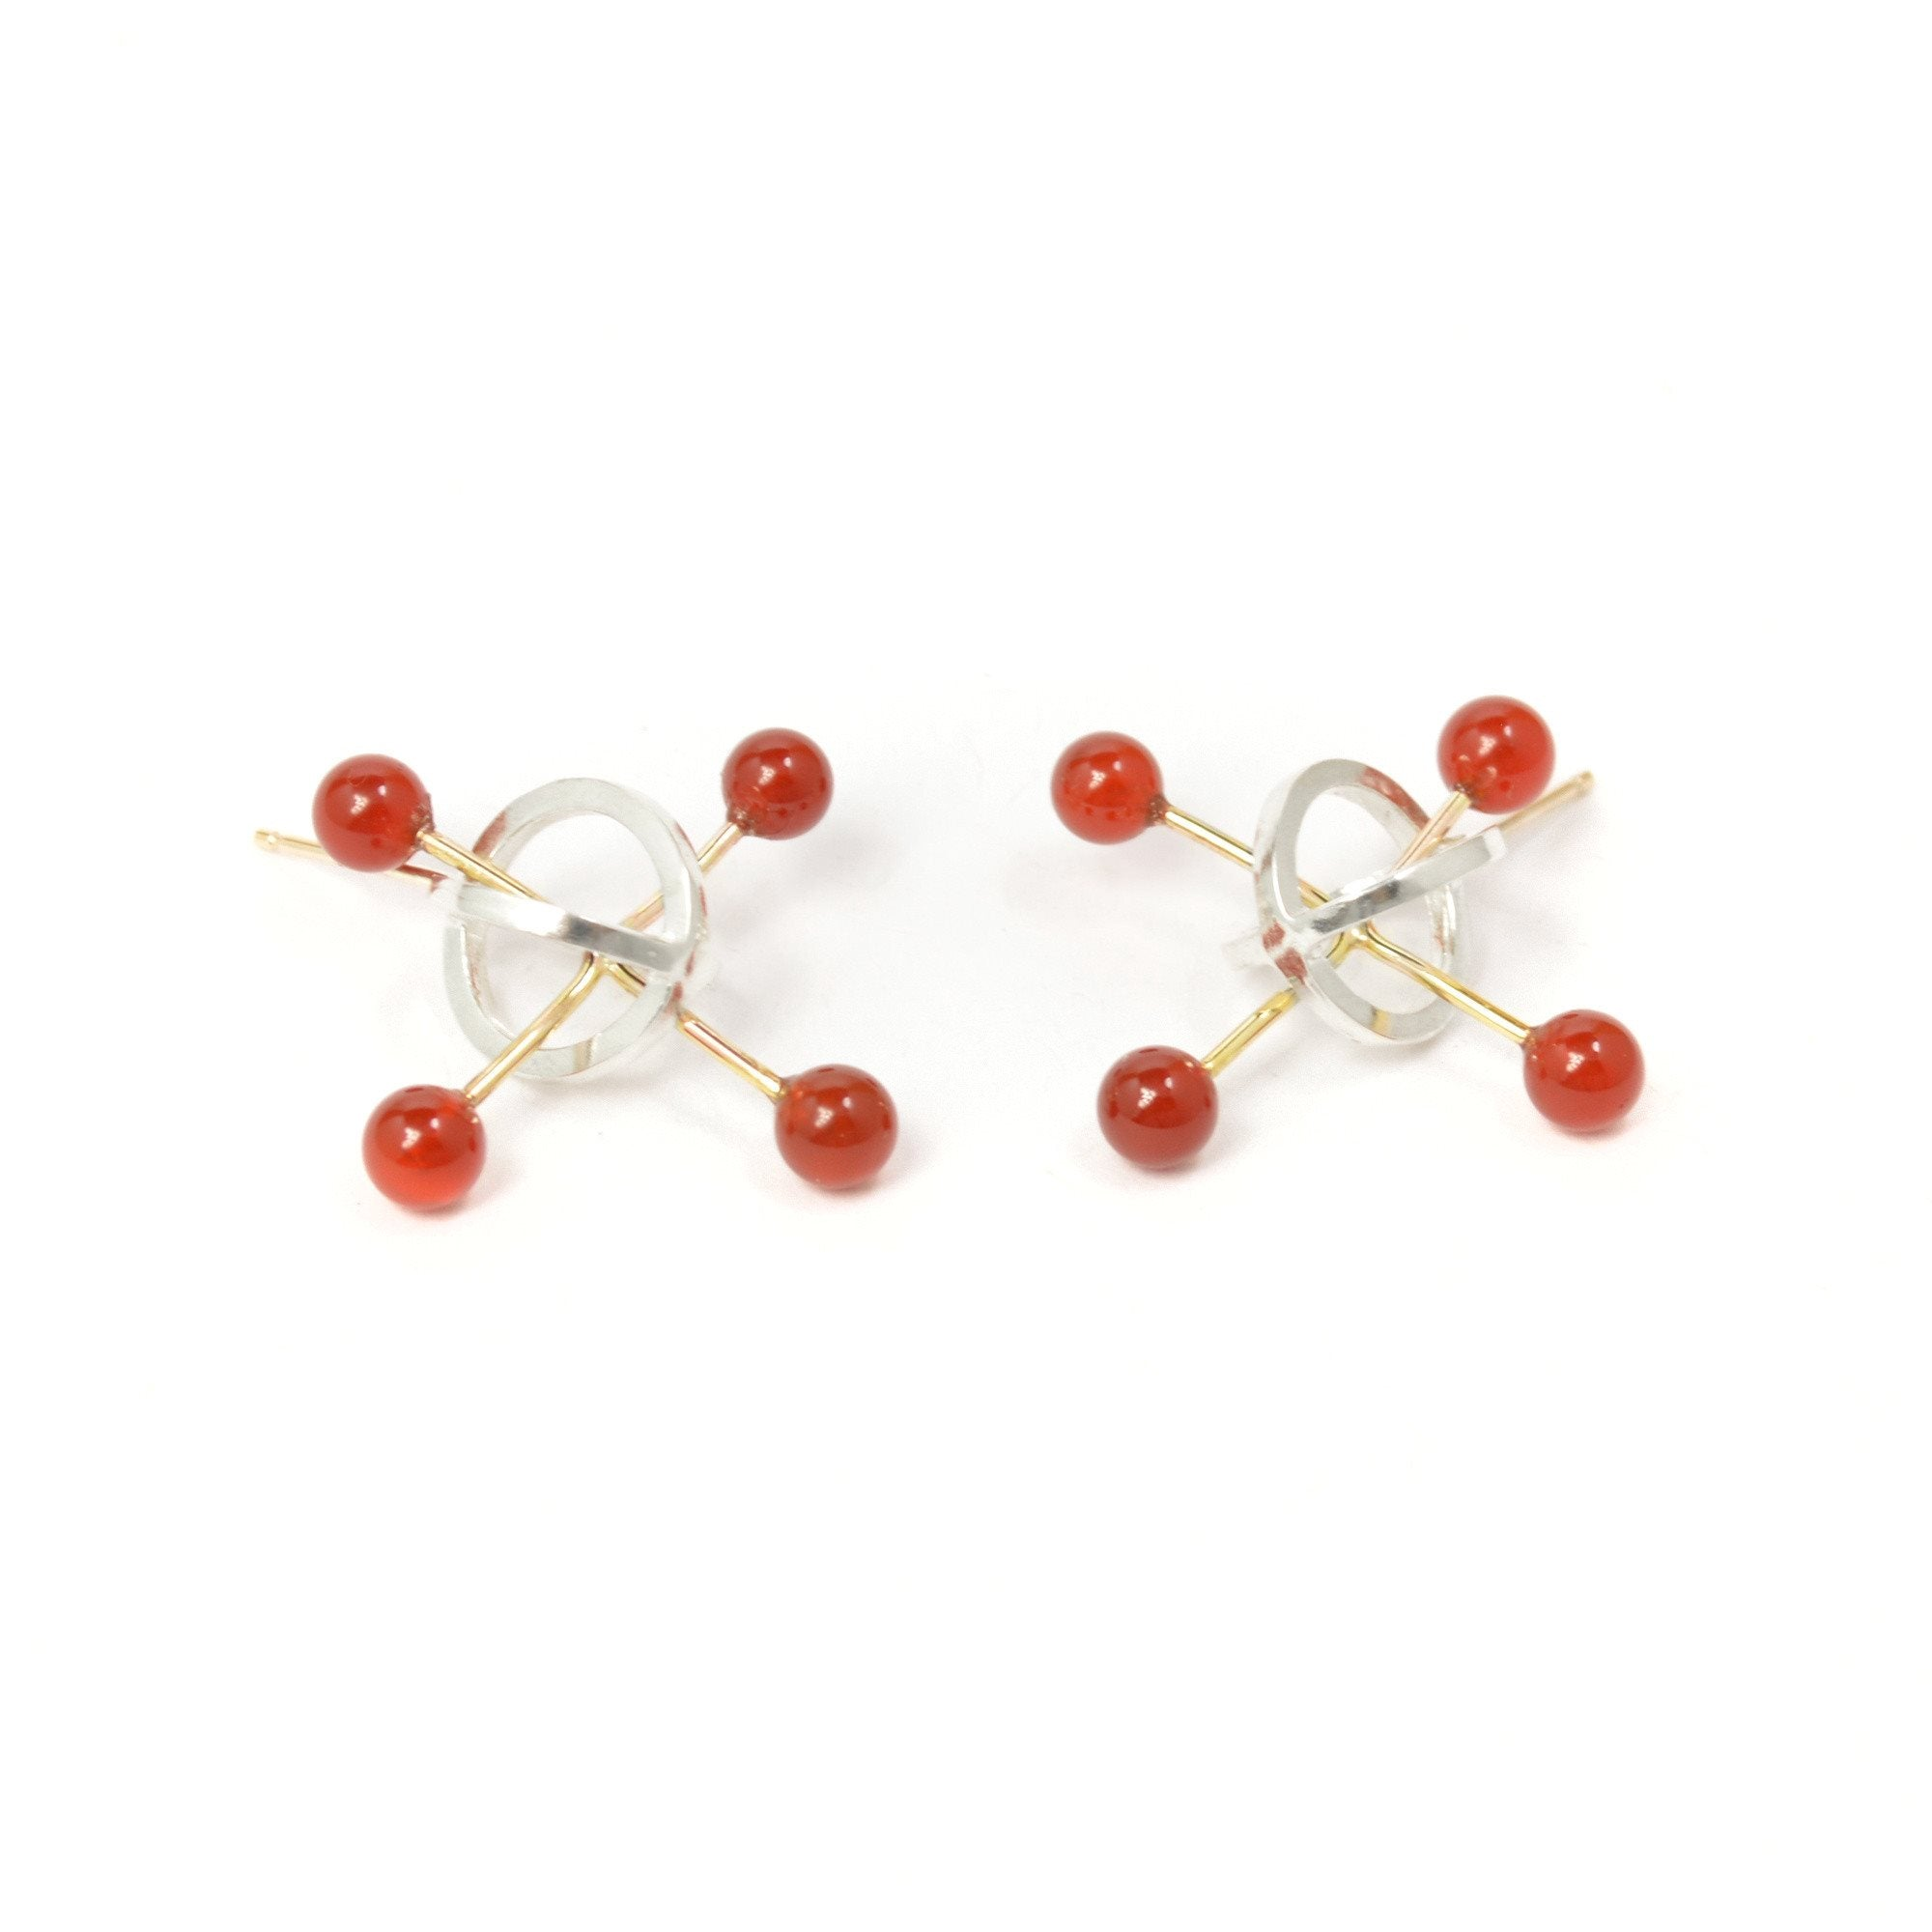 Quark Stud Earrings in Sterling Silver,14k gold and Carnelian